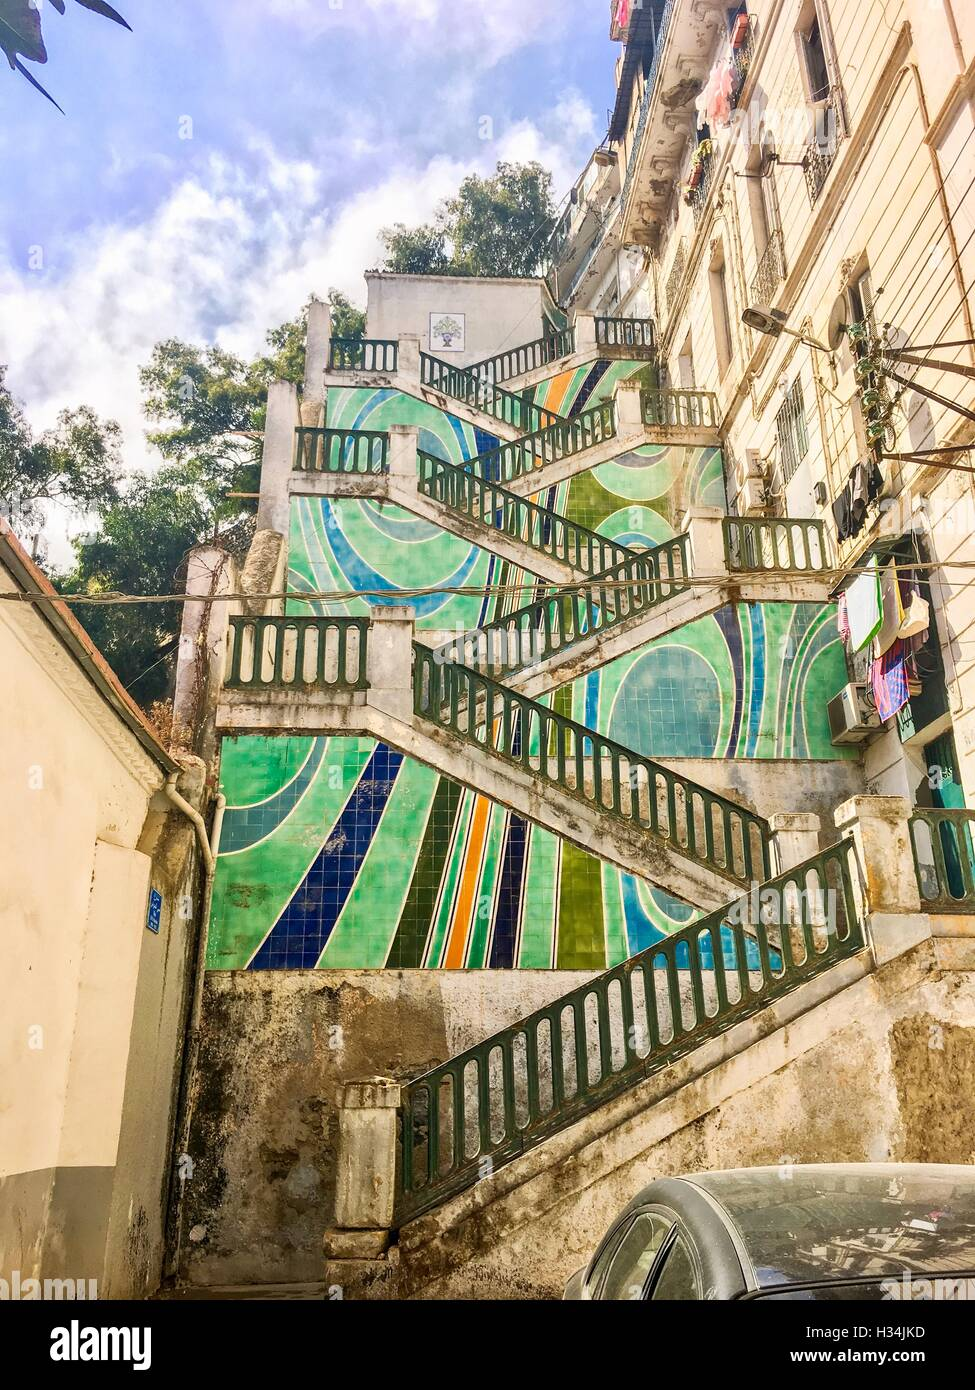 Colorful stairs in Algier city center, Algeria. Algiers has many upper districts, banlieue reached by stairs. - Stock Image